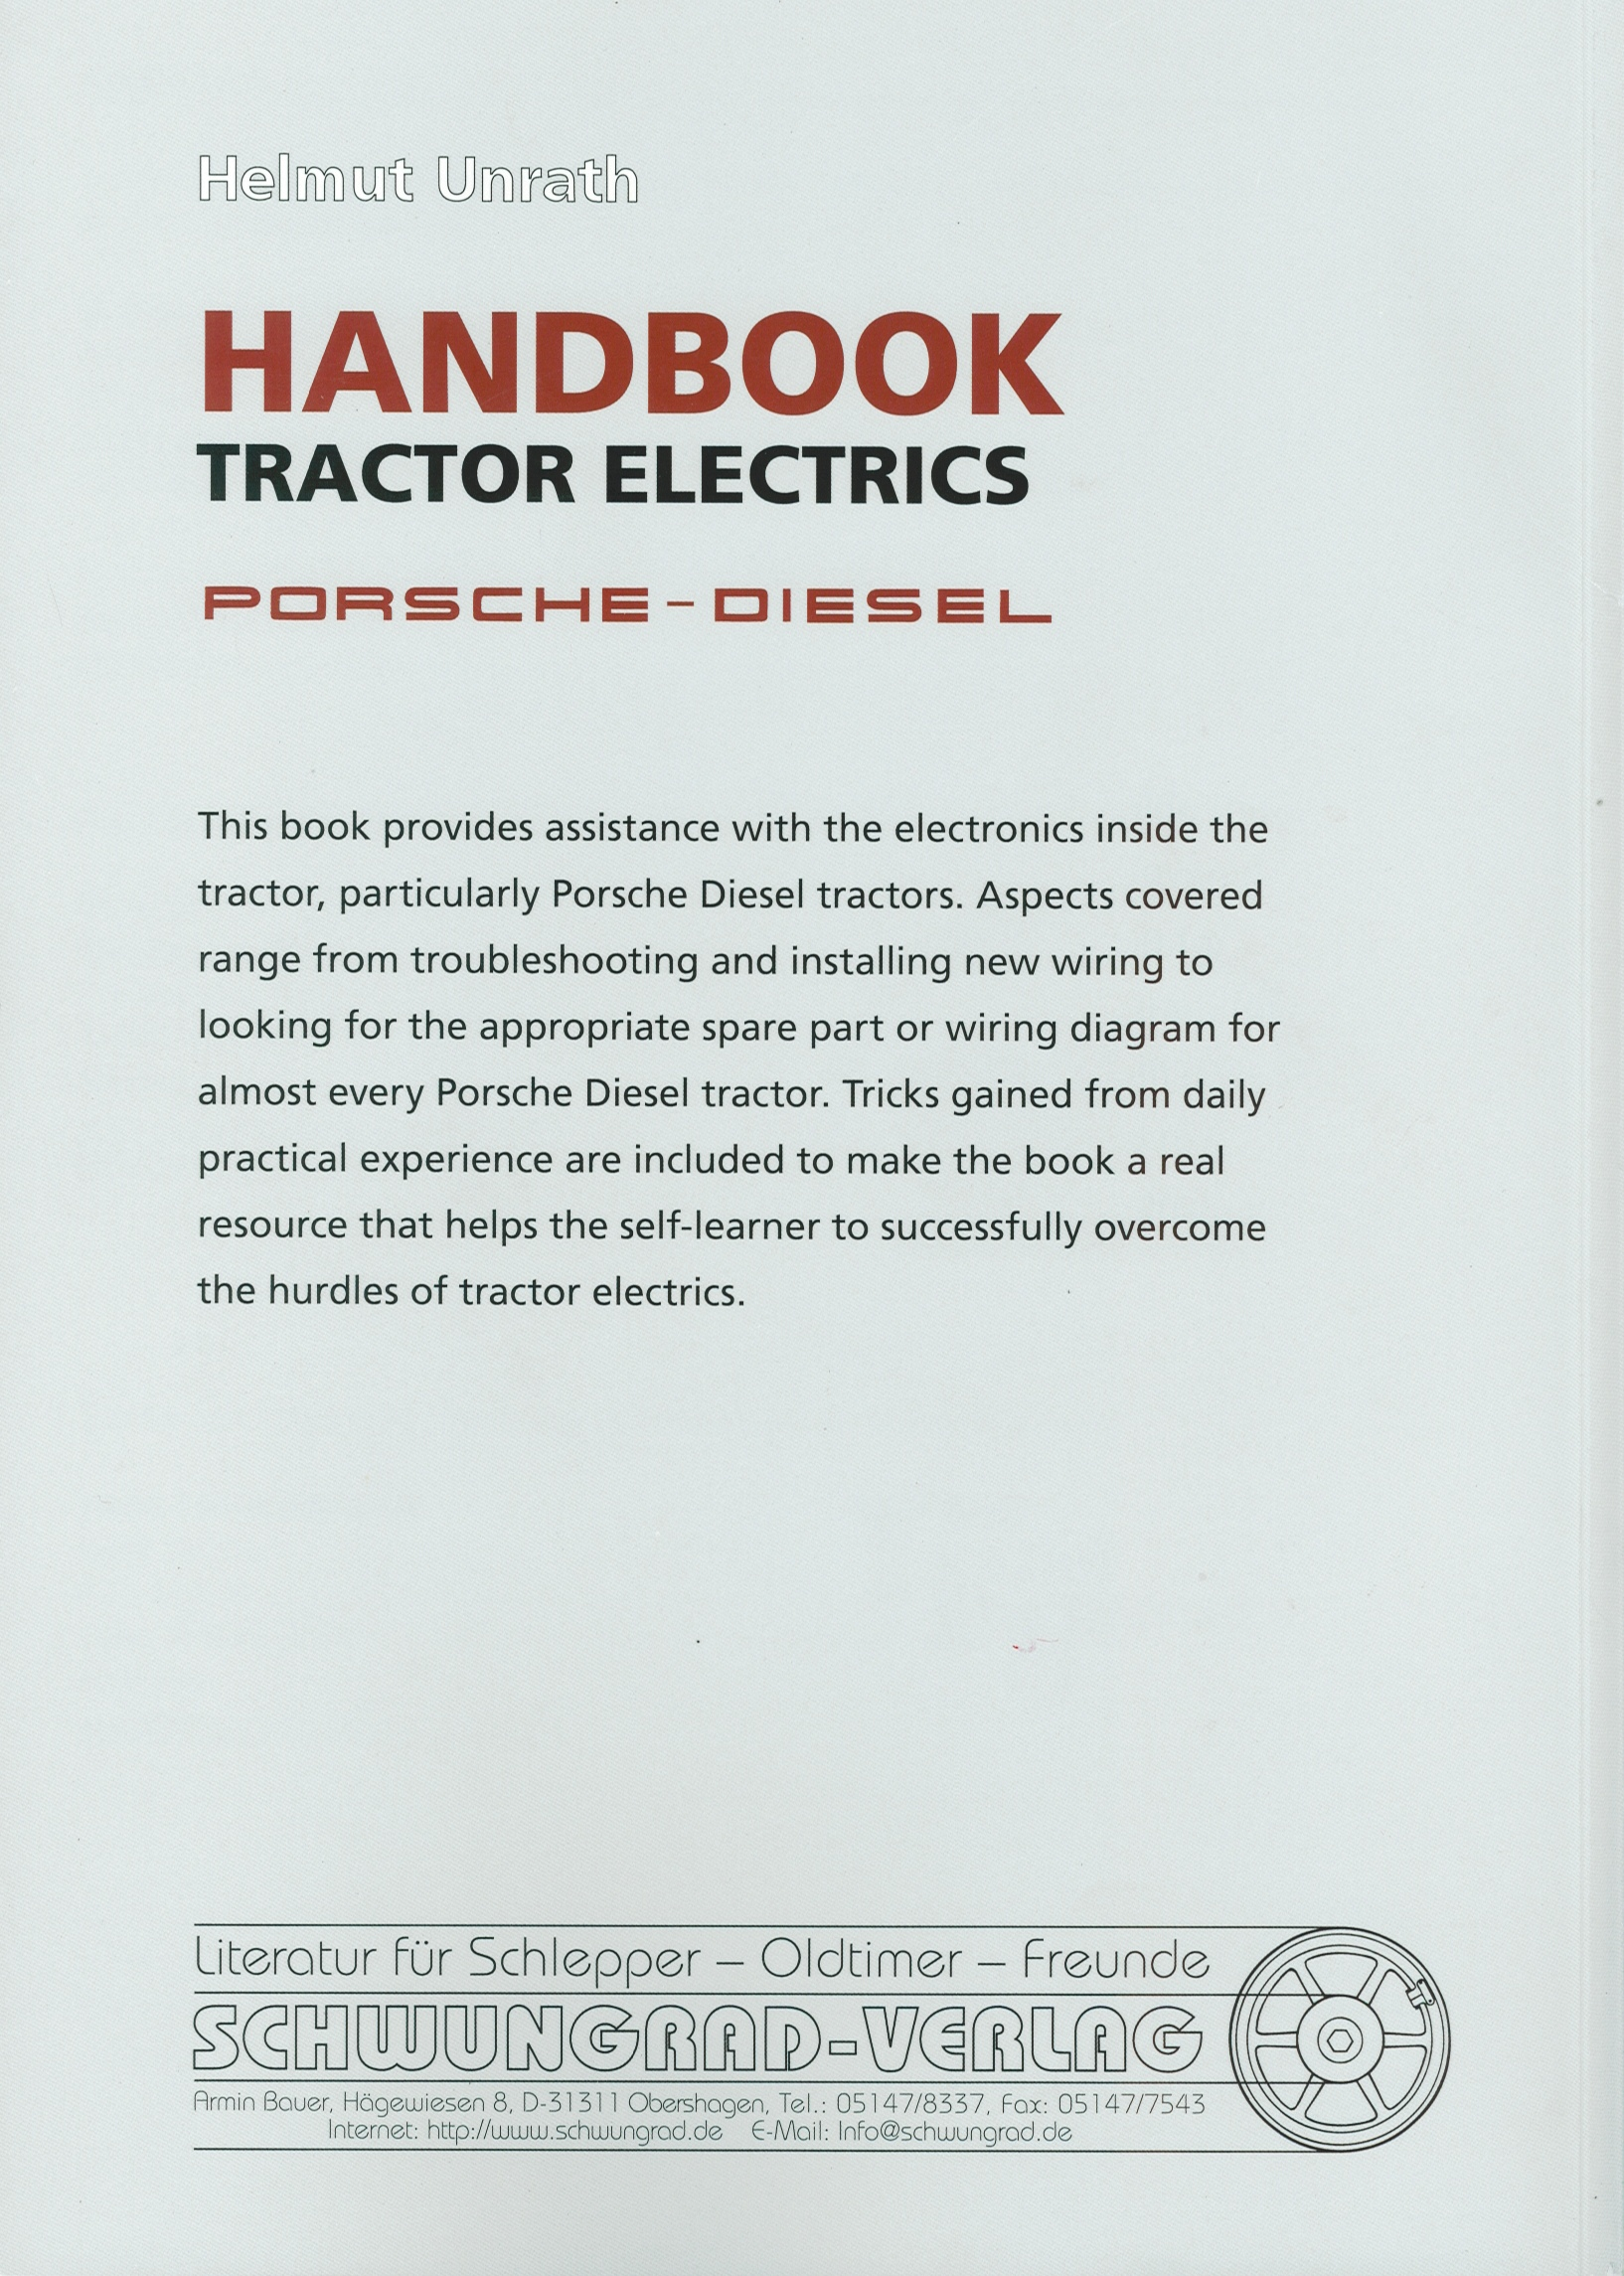 porsche diesel classifieds on Porsche Turbo Heating Diagrams for 20140713_fanelli_schlepper_elektrik, 20140713_fanelli_schlepper_elektrik, 20140713_fanelli_schlepper_elektrik at Porsche 911 Wiring-Diagram